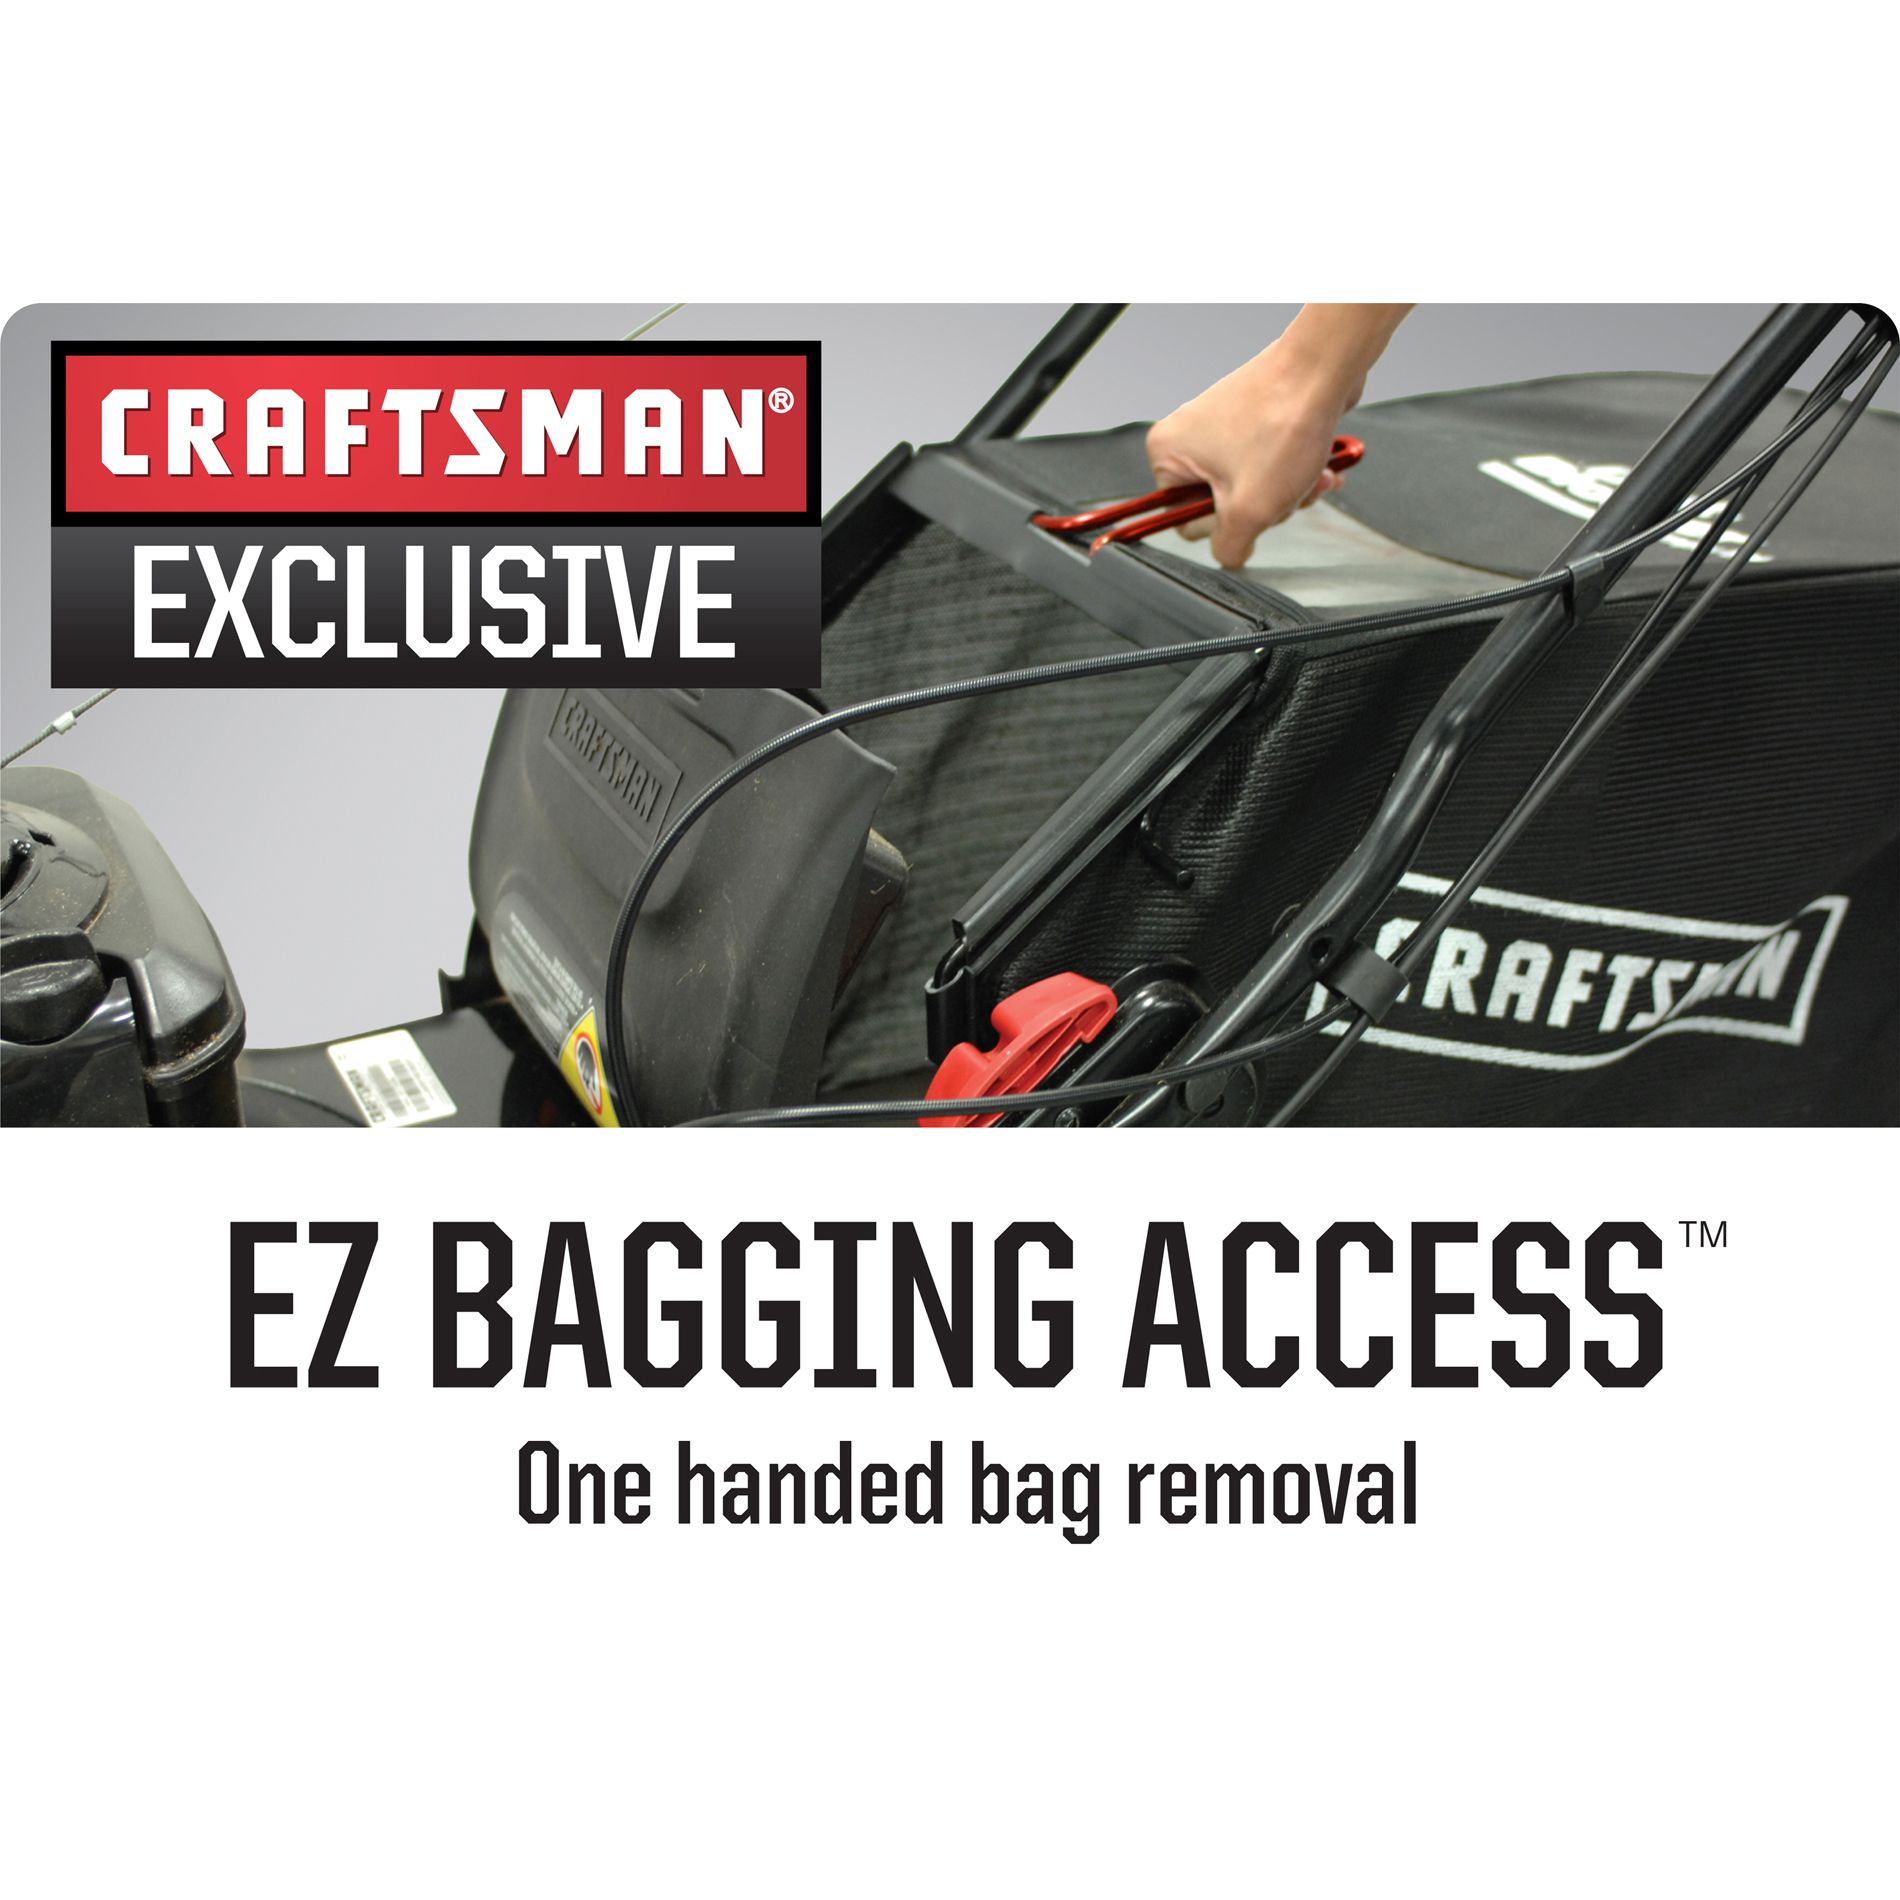 "Craftsman 190cc* Briggs & Stratton Gold Engine, 22"" Front Drive Self-Propelled EZ Lawn Mower"